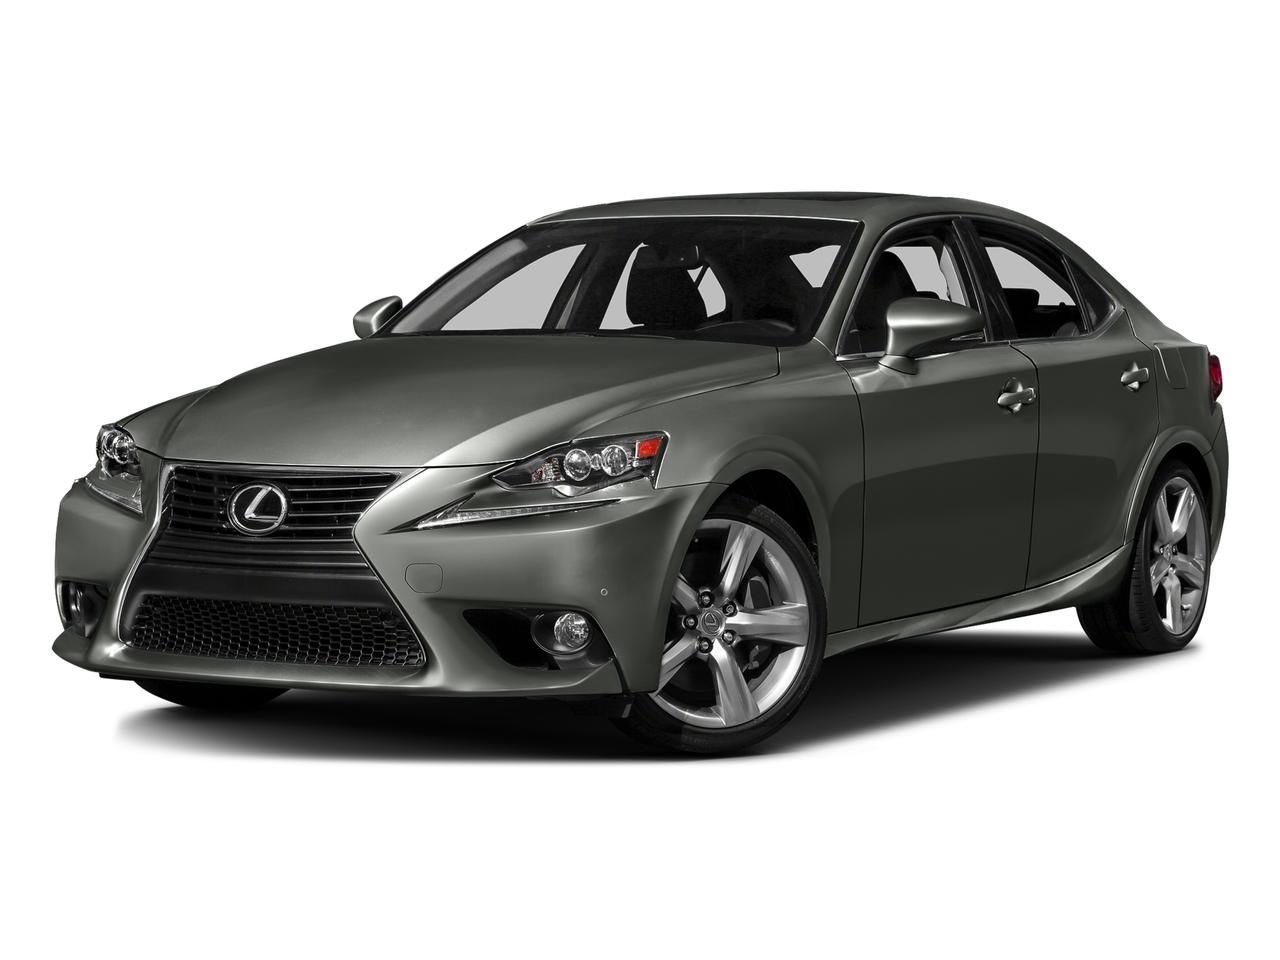 2016 Lexus IS 350 Vehicle Photo in Manassas, VA 20109